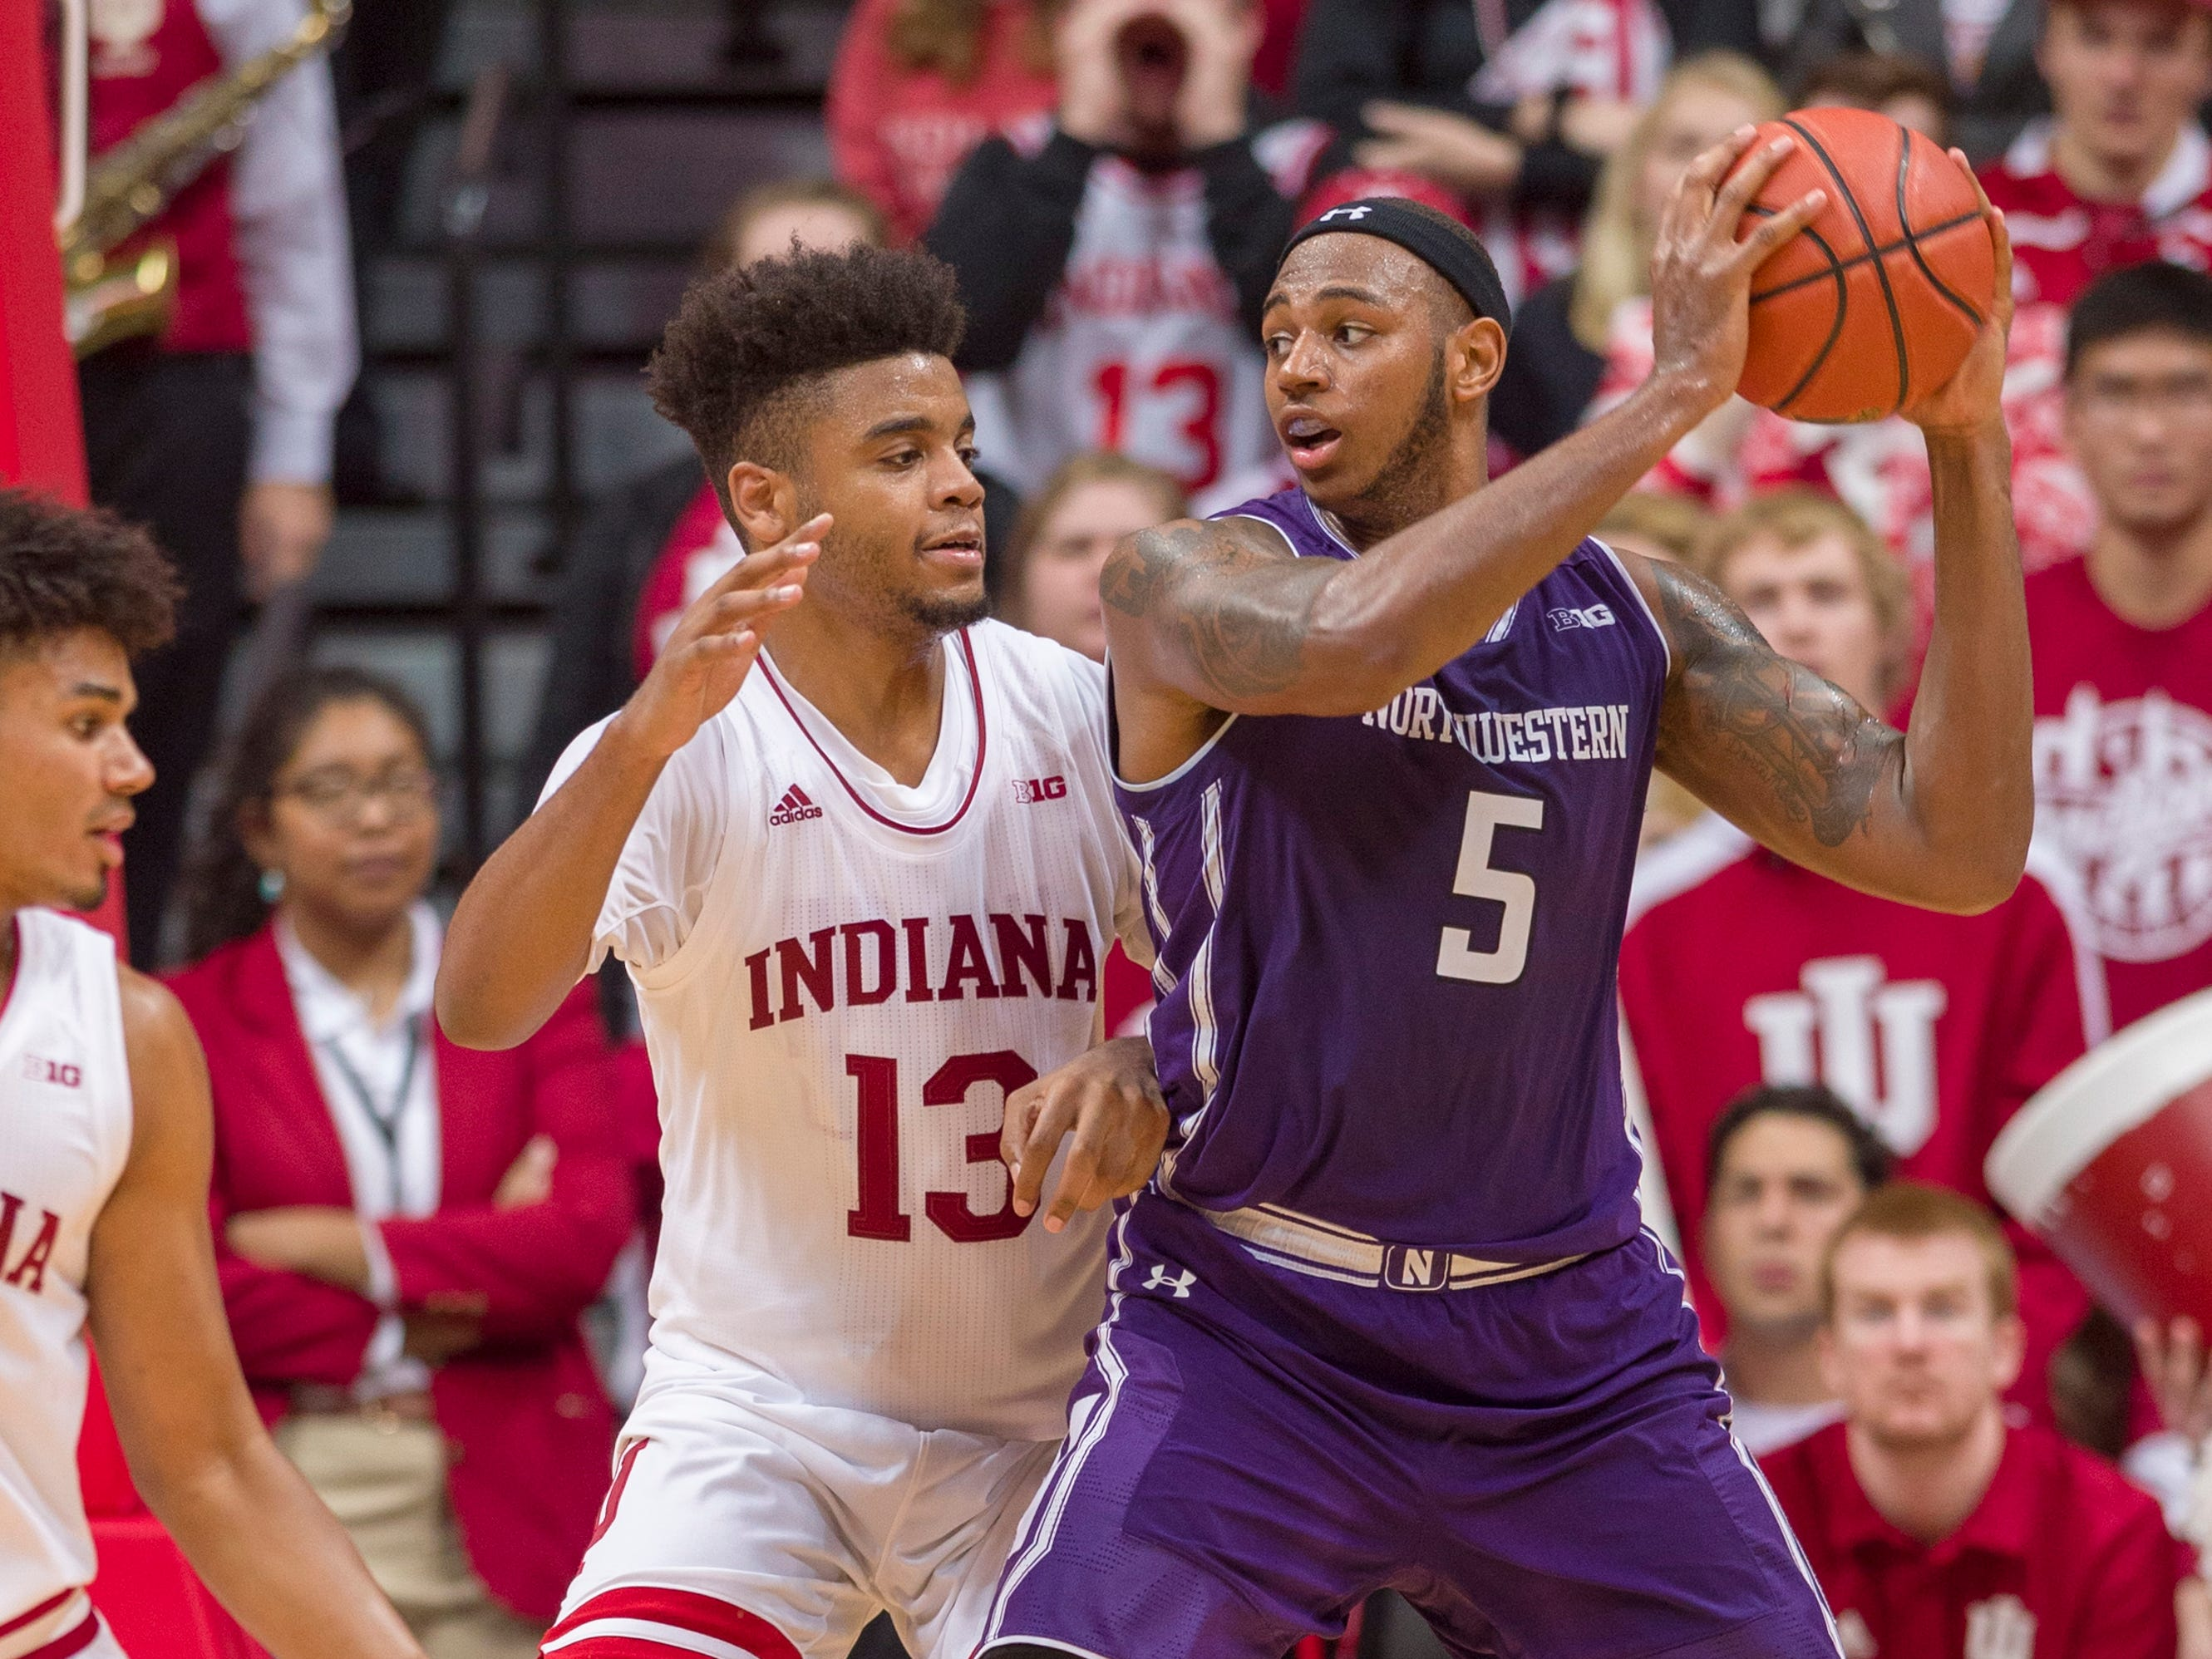 Northwestern center Dererk Pardon (5) works the ball inside against the defense of Indiana forward Juwan Morgan (13) during the second half of an NCAA college basketball game Saturday, Dec. 1, 2018, in Bloomington, Ind. Indiana won 68-66.